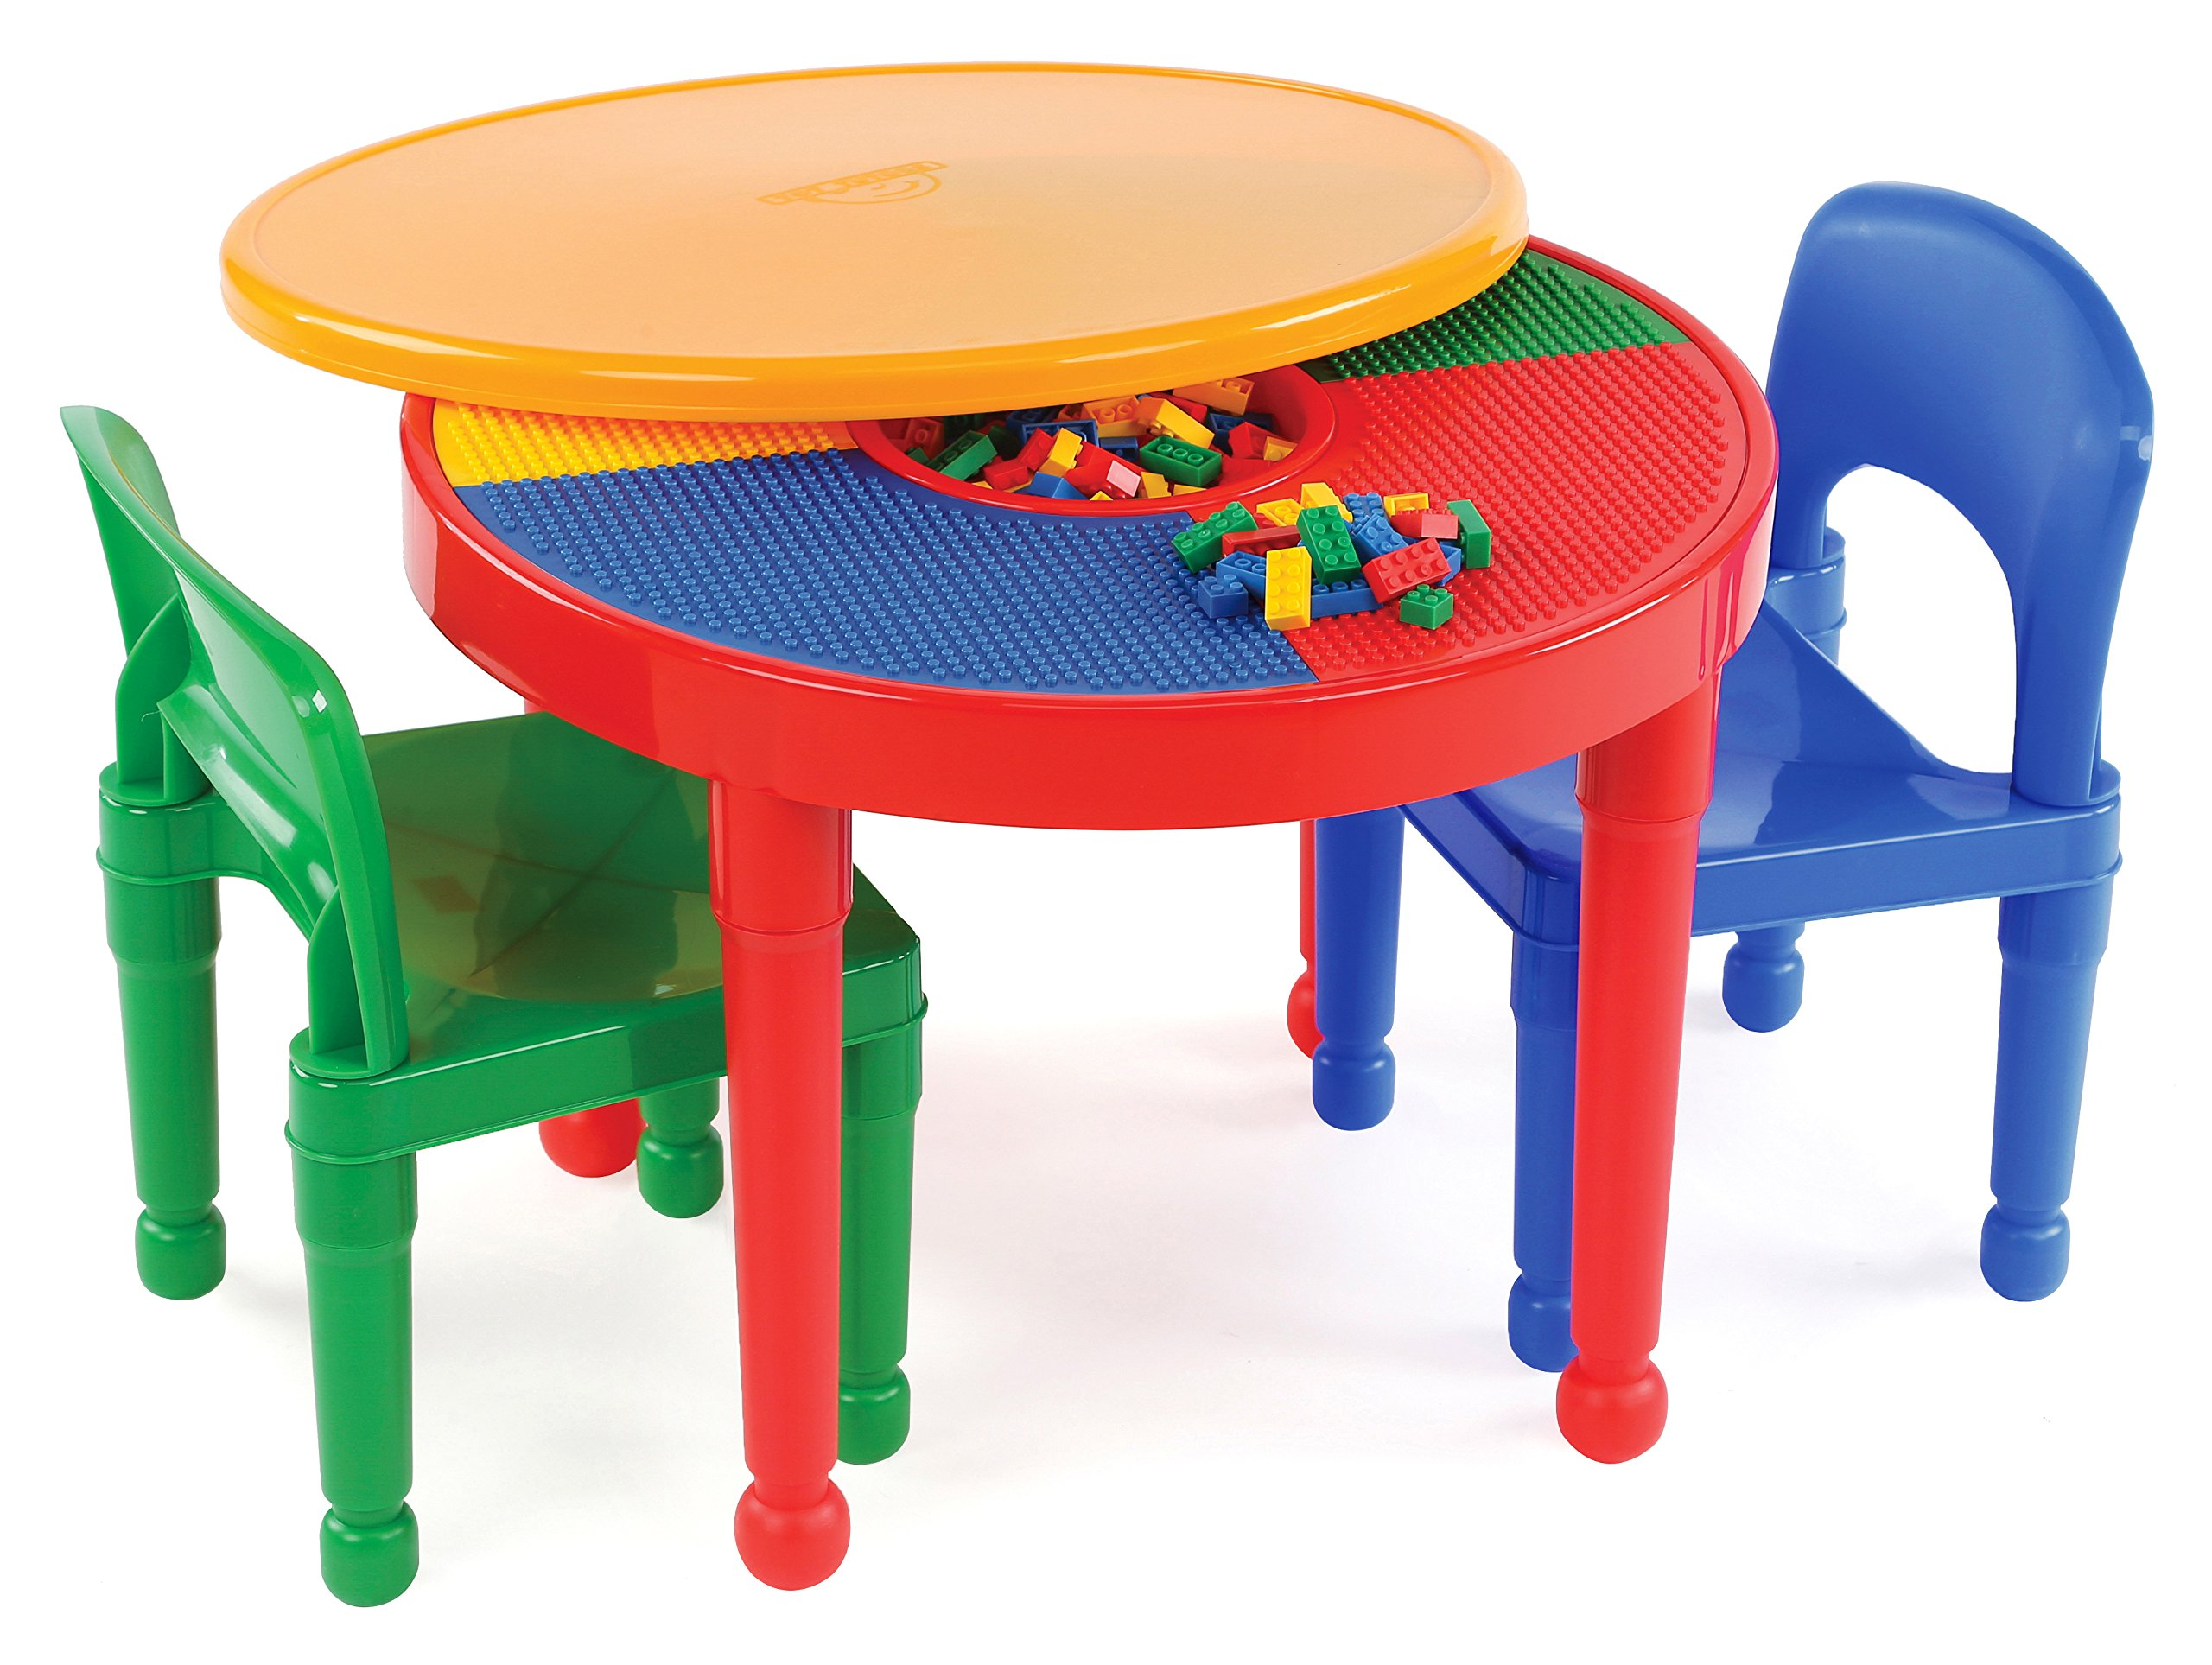 round plastic construction table  chairs play legos kids dining  - round plastic construction table  chairs play legos kids dining buildingblocks